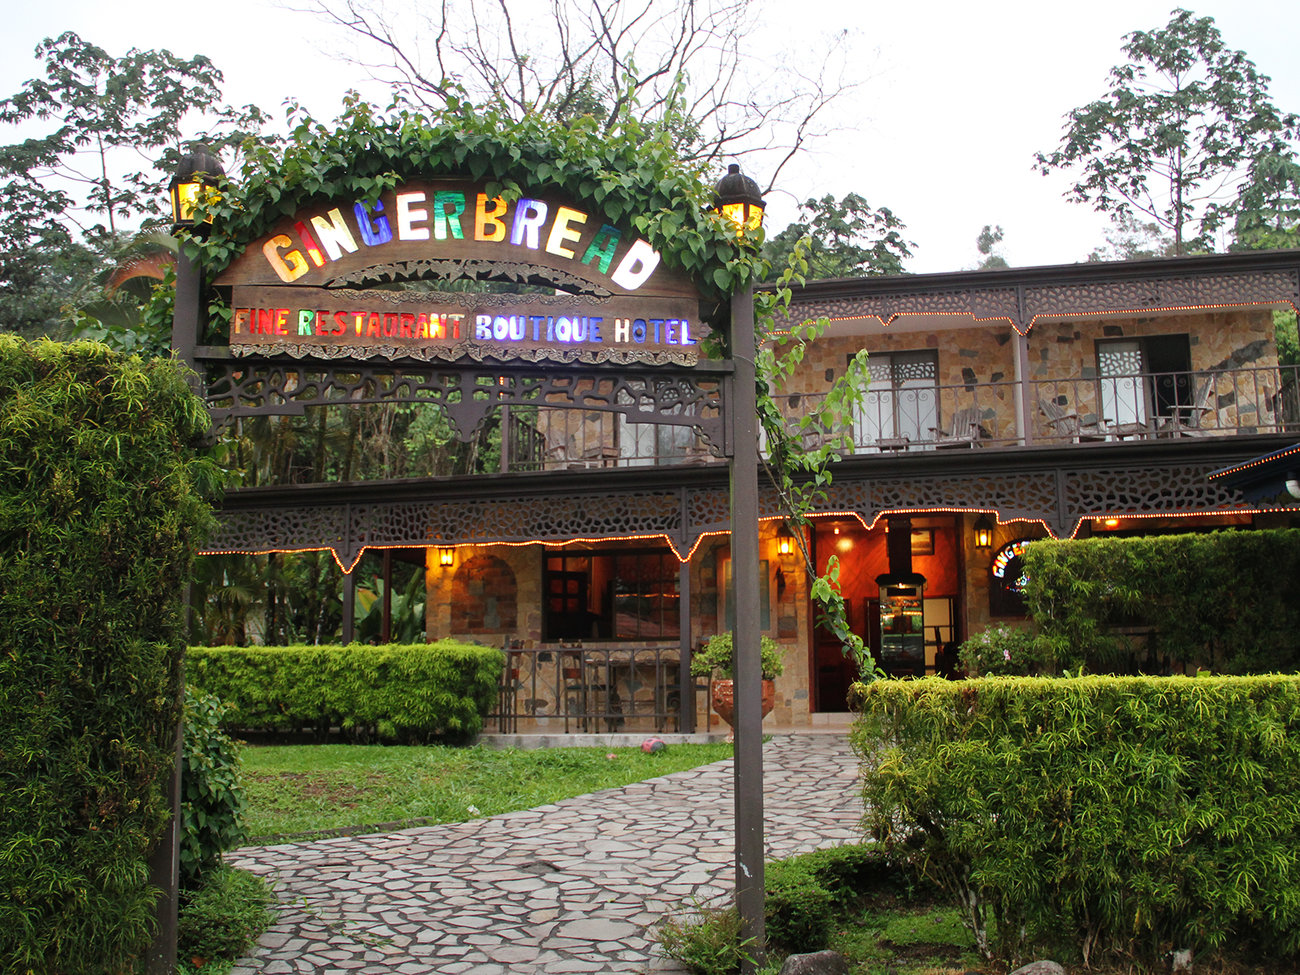 Gingerbread Fine Restaurant in Costa Rica